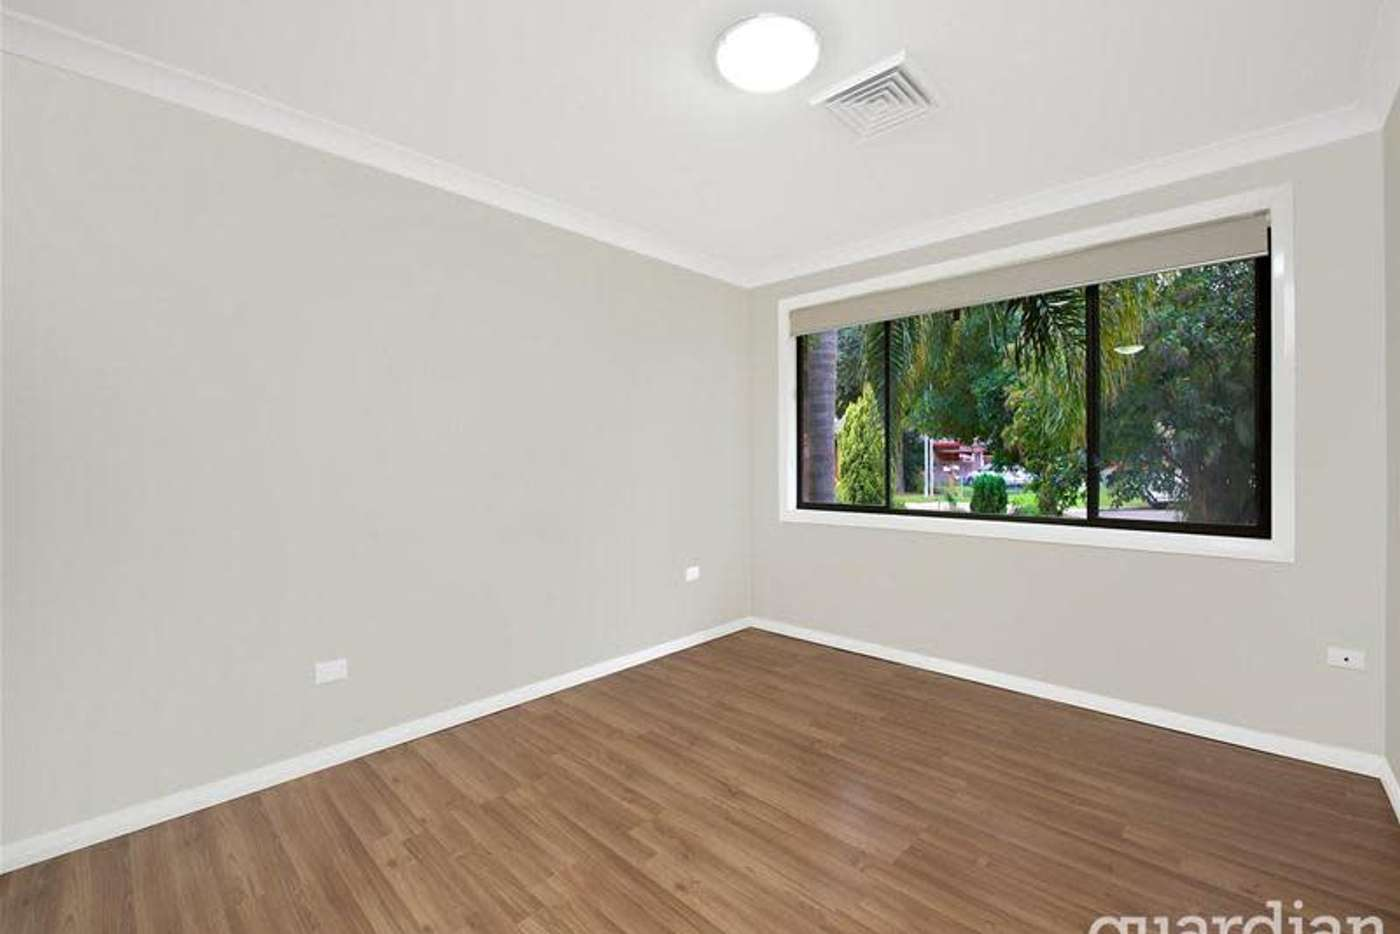 Sixth view of Homely house listing, 13 Attard Avenue, Marayong NSW 2148